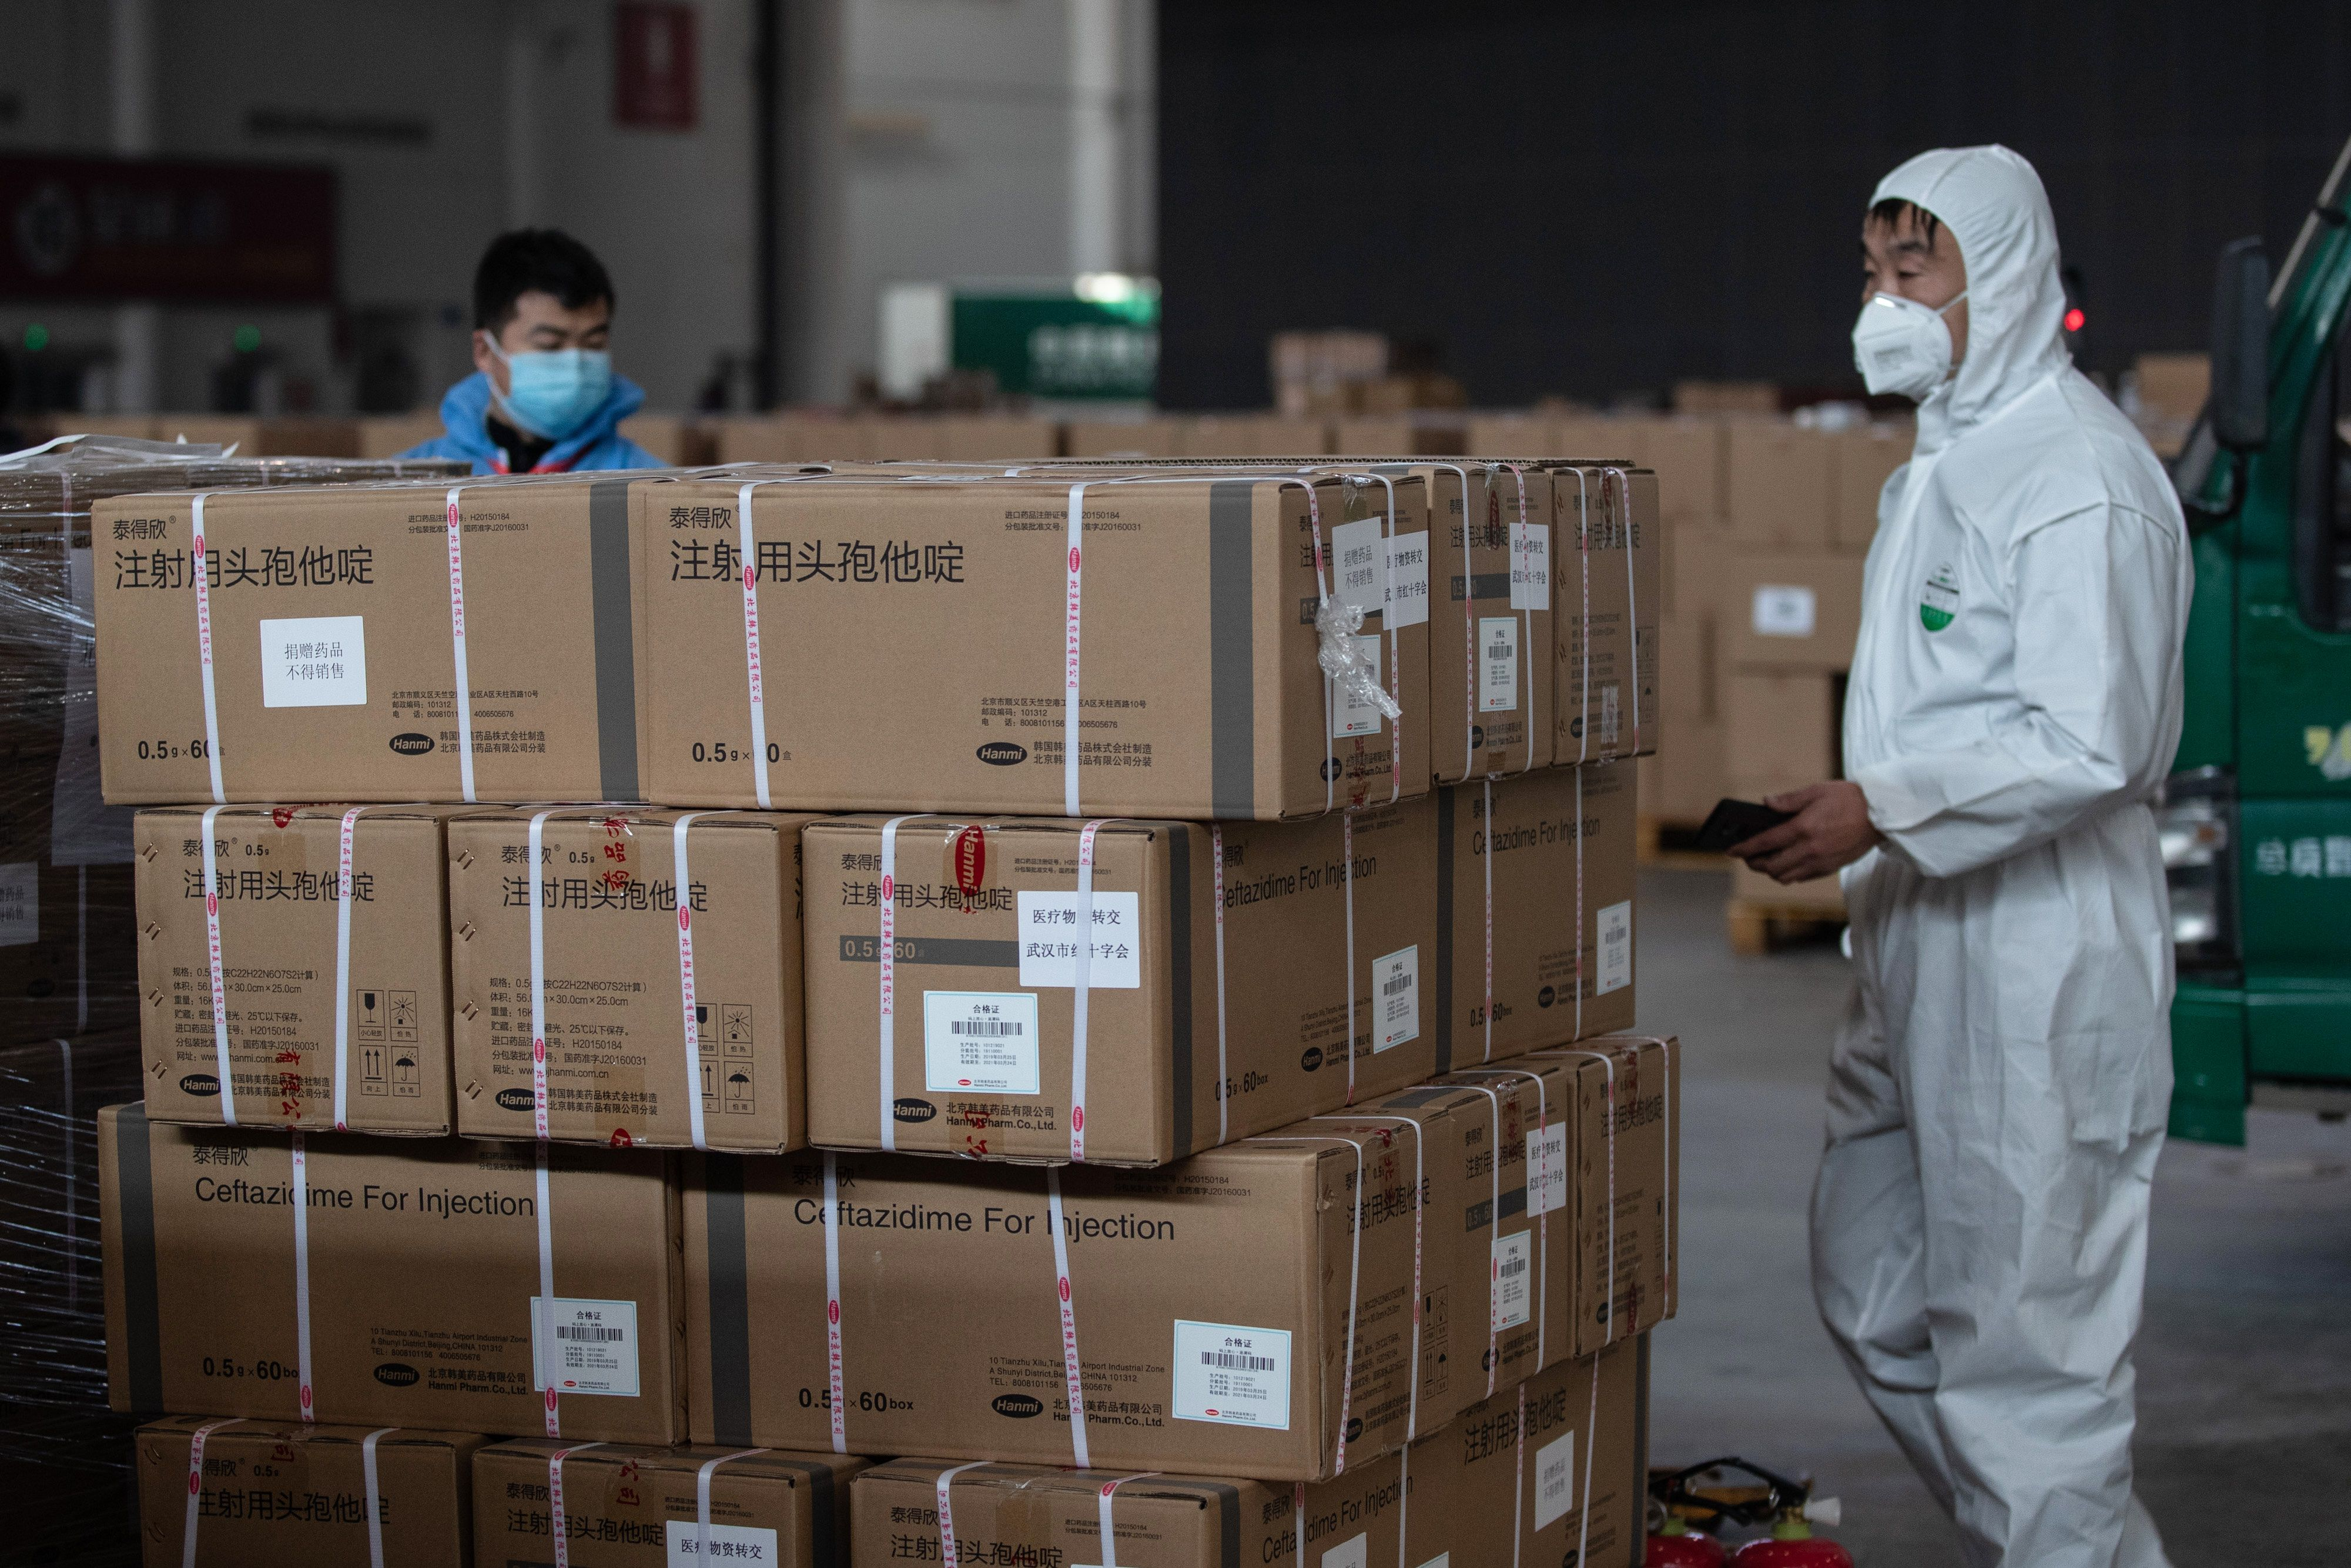 Medical supplies at a warehouse in Wuhan, China, on February 4, 2020.